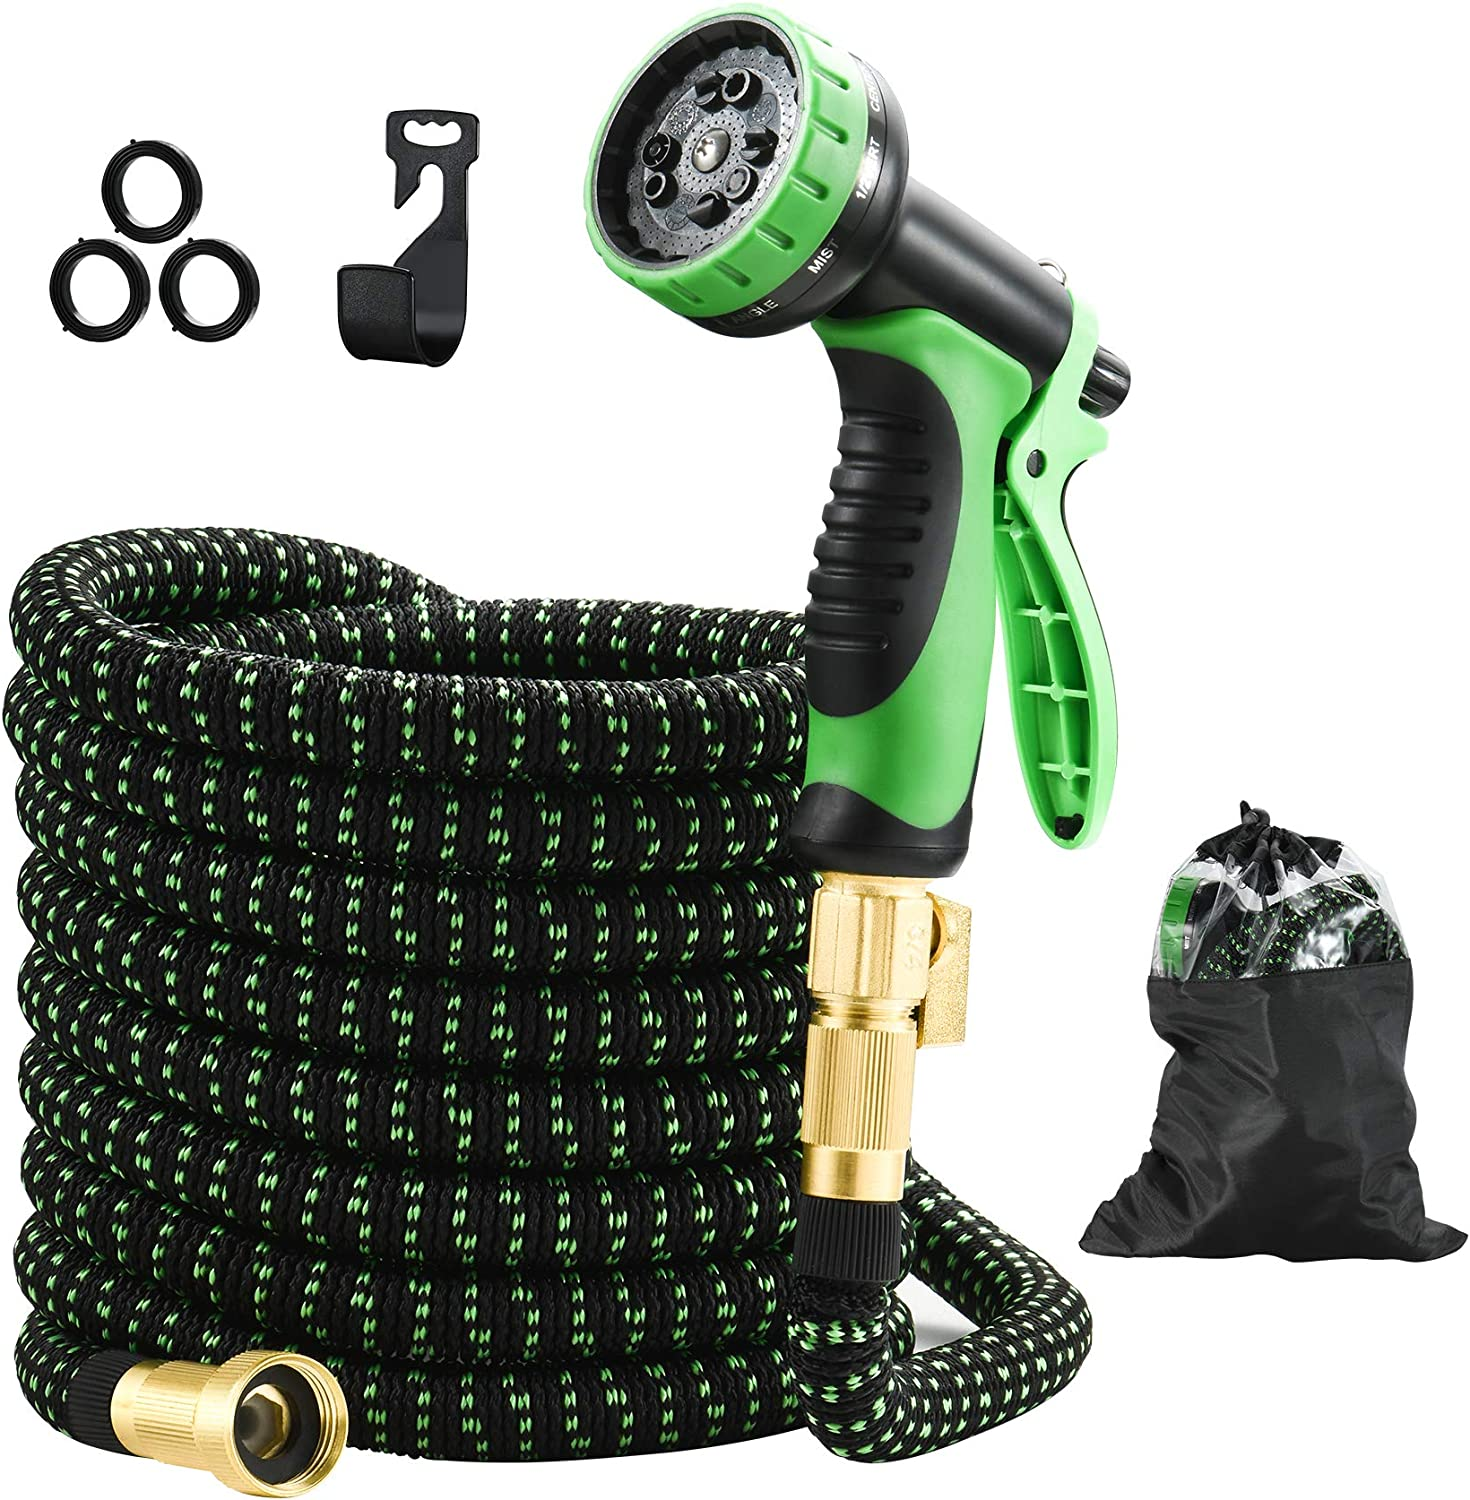 STULANBO 50ft Expandable Garden Hose, Water Hose with 3/4 lnch Solid Brass Connectors, Flexible Garden Hose with 10 Function Spray Nozzle Extra Strength Fabric-Convenient Storage